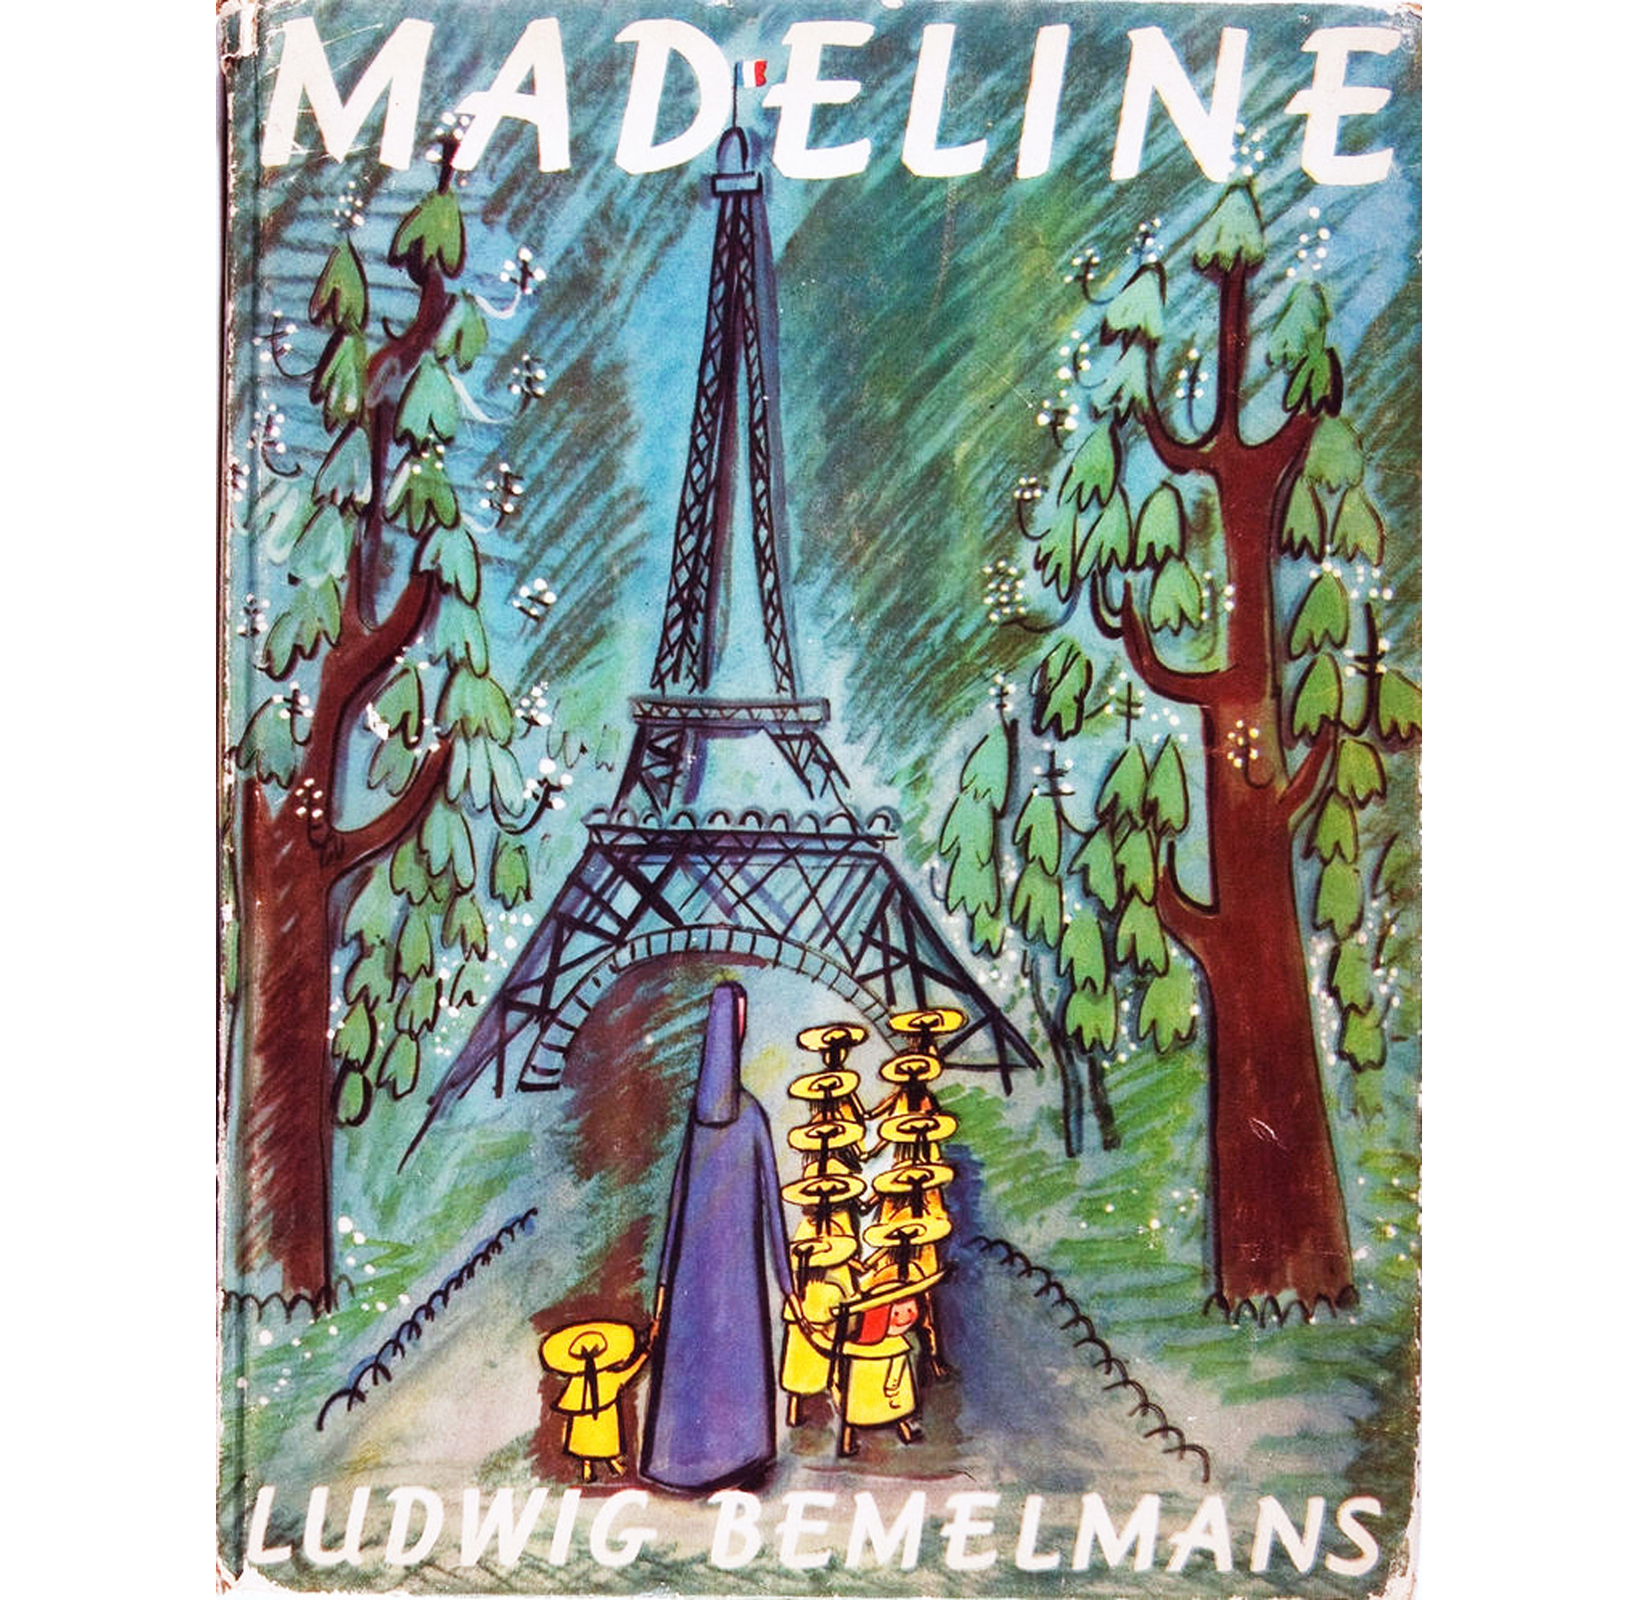 madeline a Madeline is an original ballet, choreographed by artistic director jessica boelts  set to 1940s jazz music paquita was performed by the ridgefield ballet.